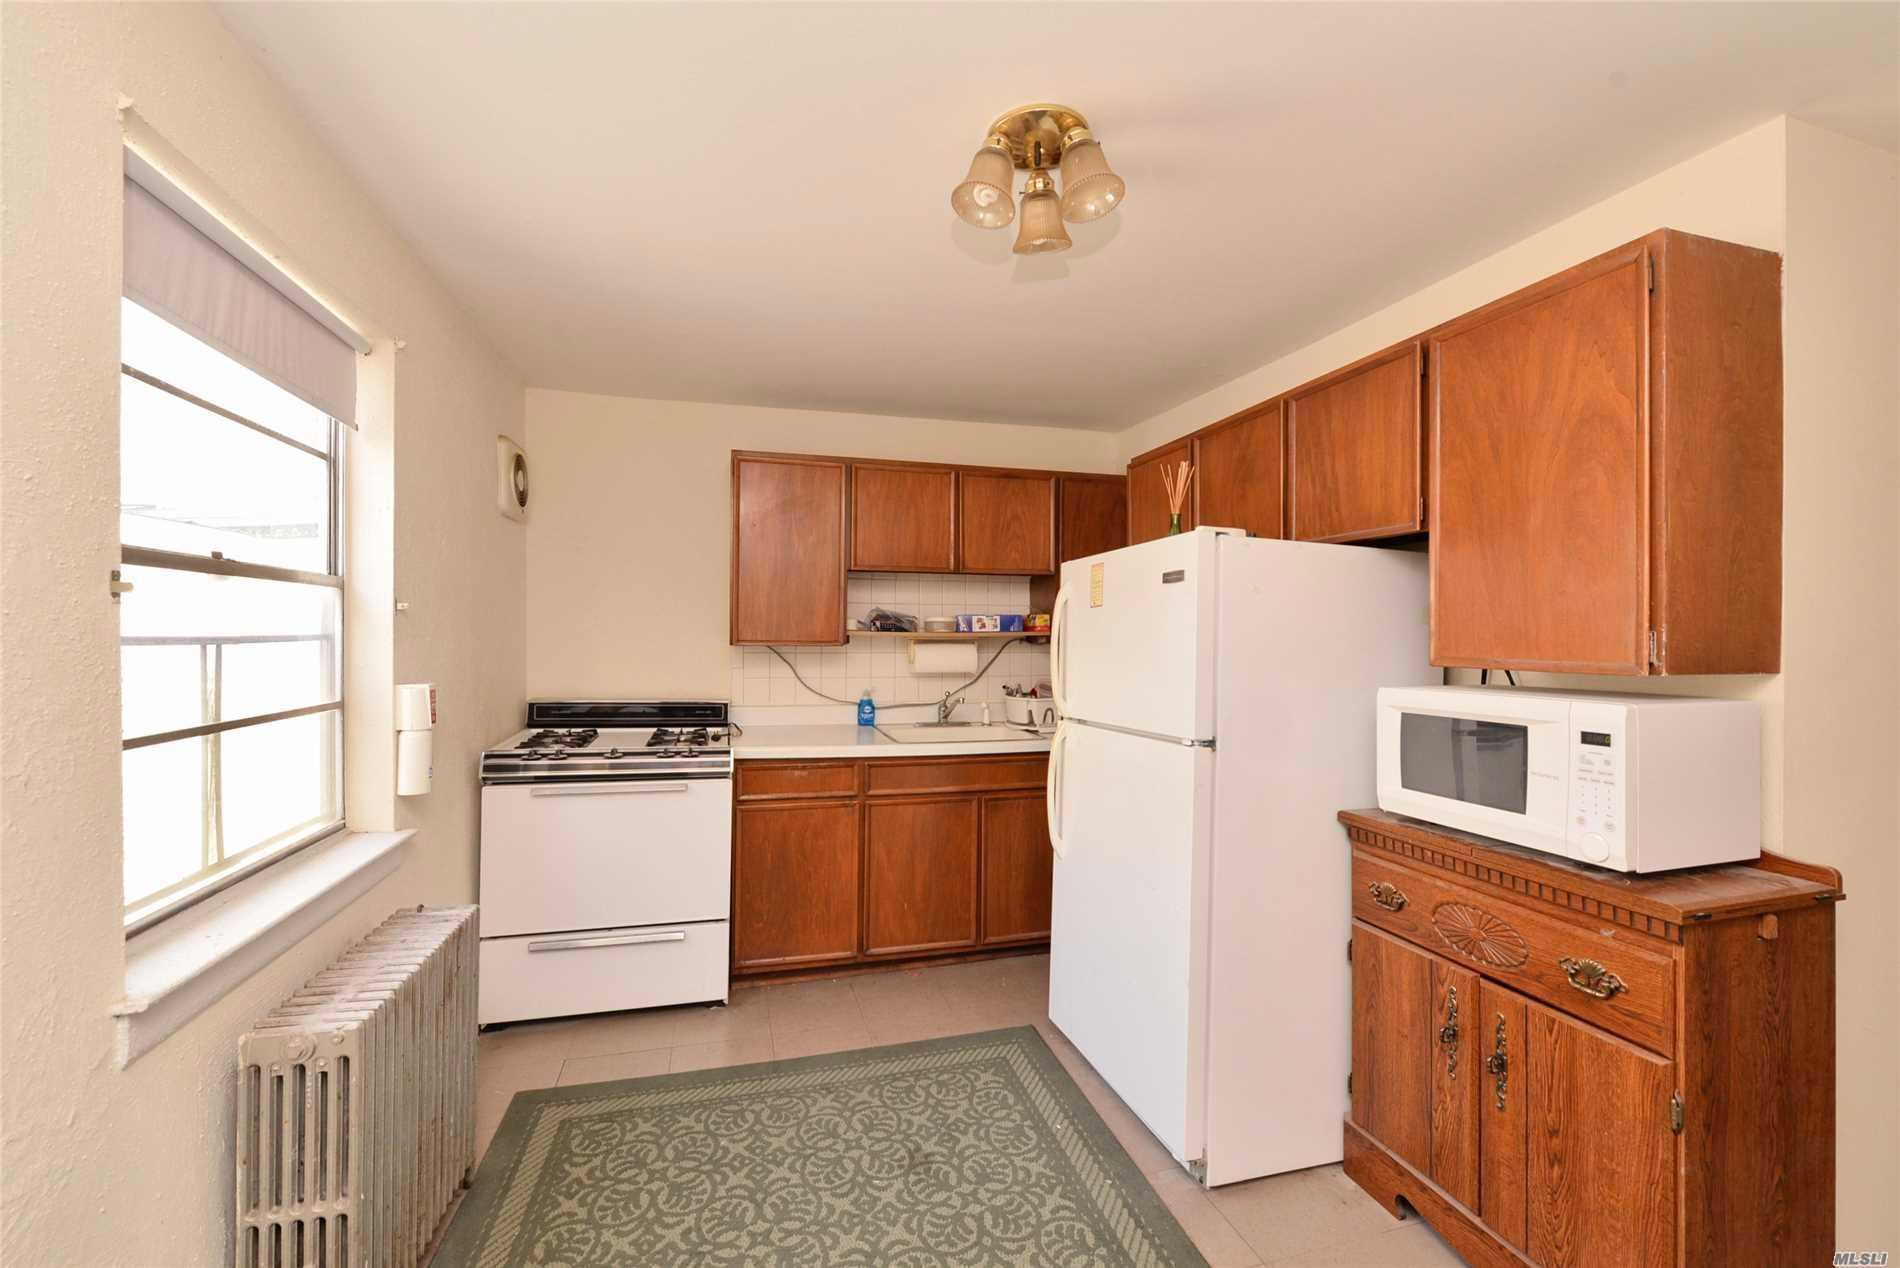 Spacious Apartment on The Second Floor In The Heart of Village Of Roslyn. Close to Shops, Restaurants, Short Walk to LIRR. Freshly Painted, Ready For Occupancy.